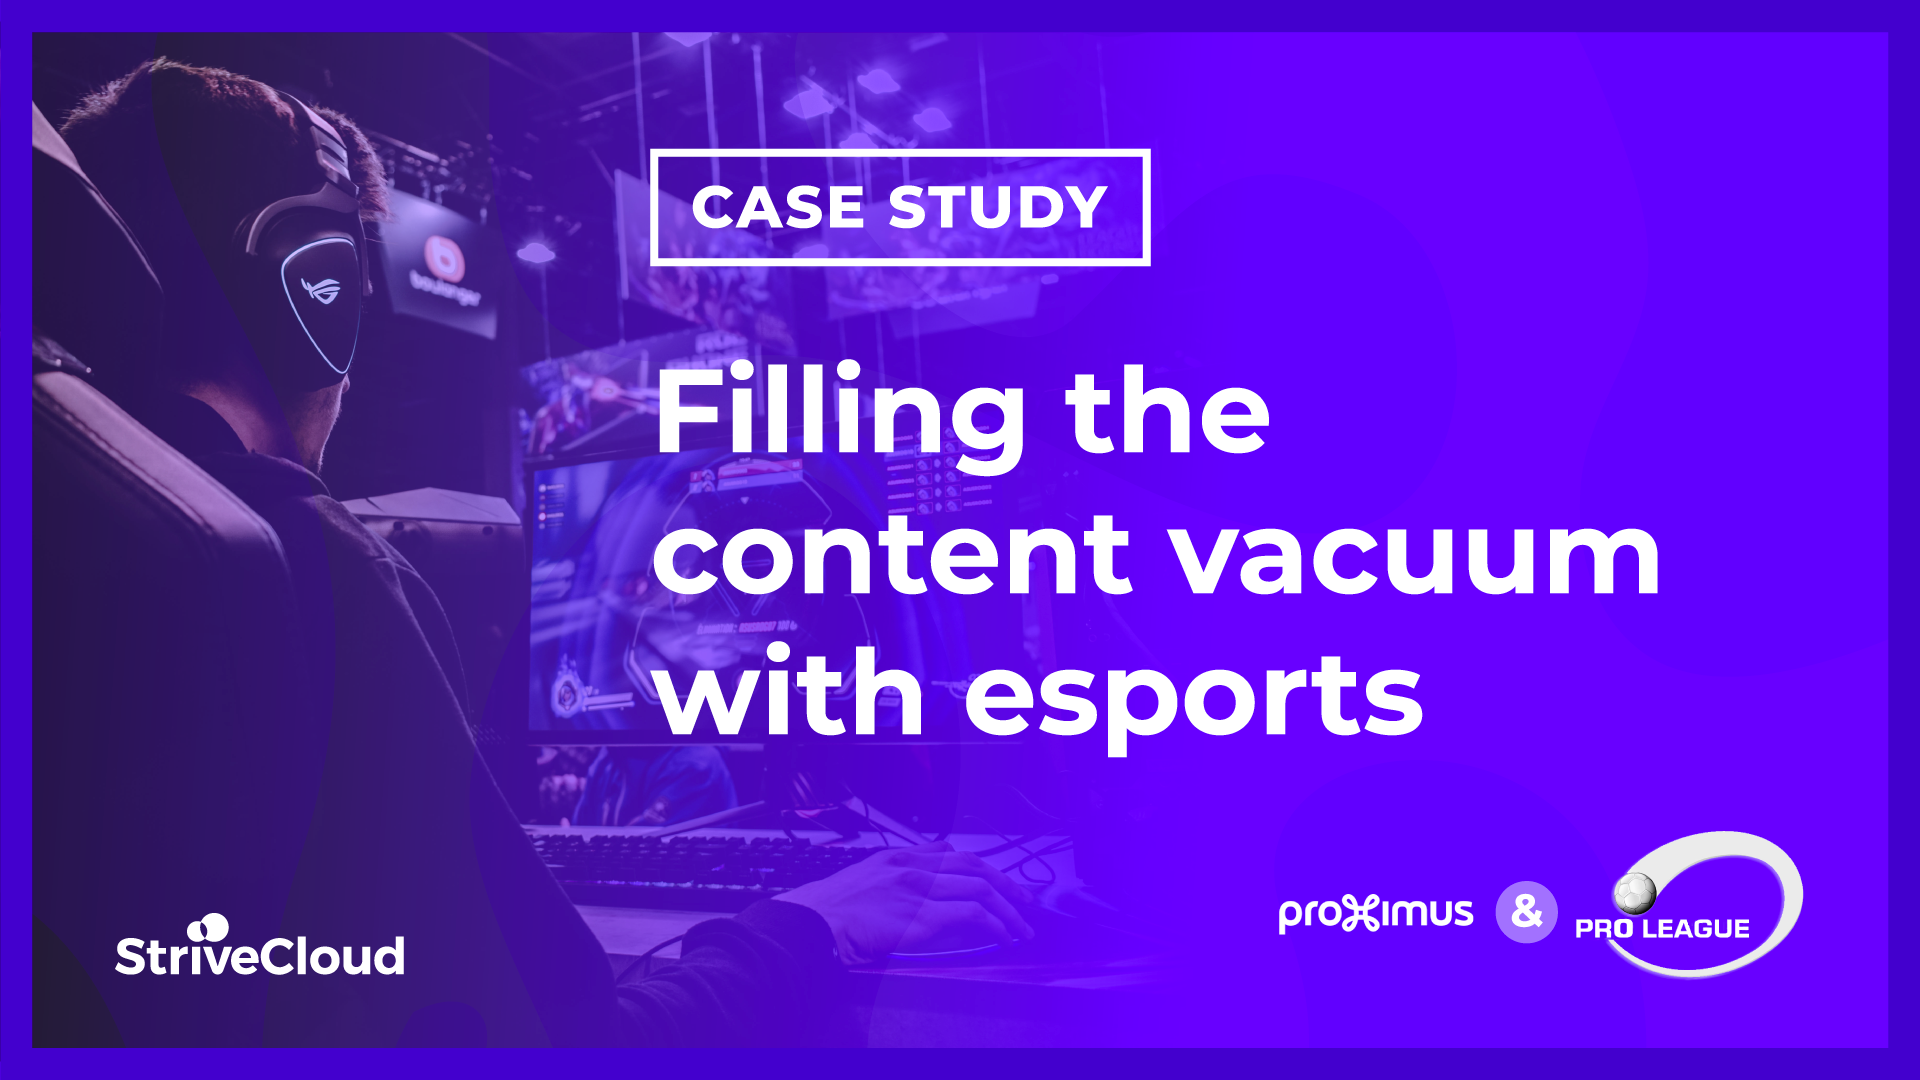 Case study: Filling the content vacuum with esports